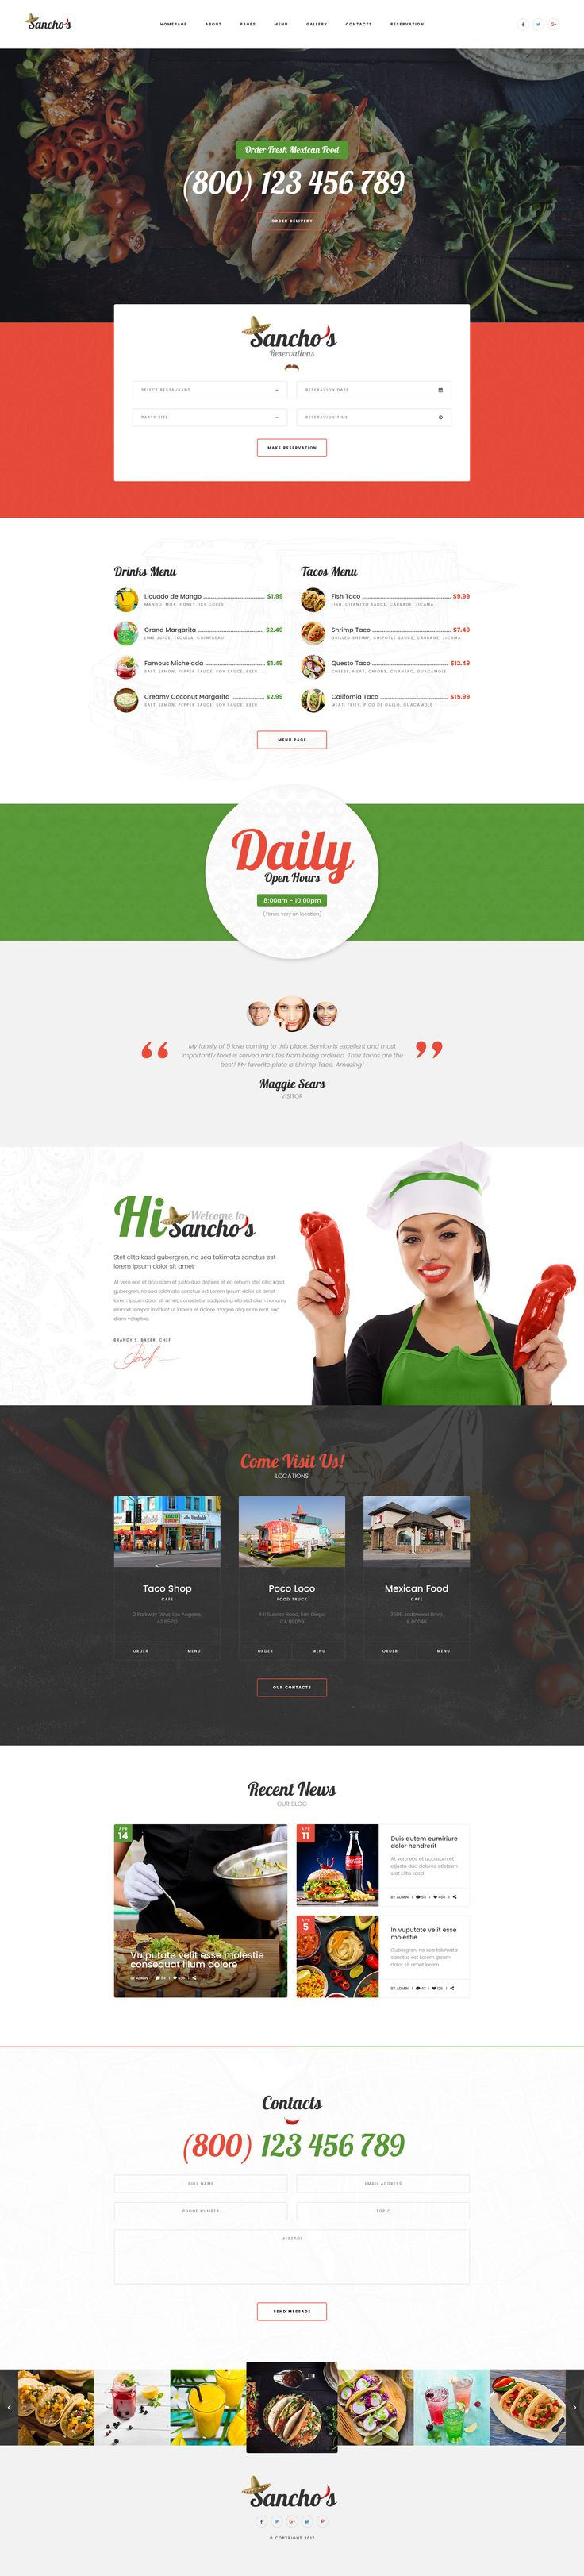 Sancho's - Mexican Food Restaurant and Delivery Service PSD Template #catering #coffee #dining • Download ➝ https://themeforest.net/item/sanchos-mexican-food-restaurant-and-delivery-service-psd-template/19838121?ref=pxcr